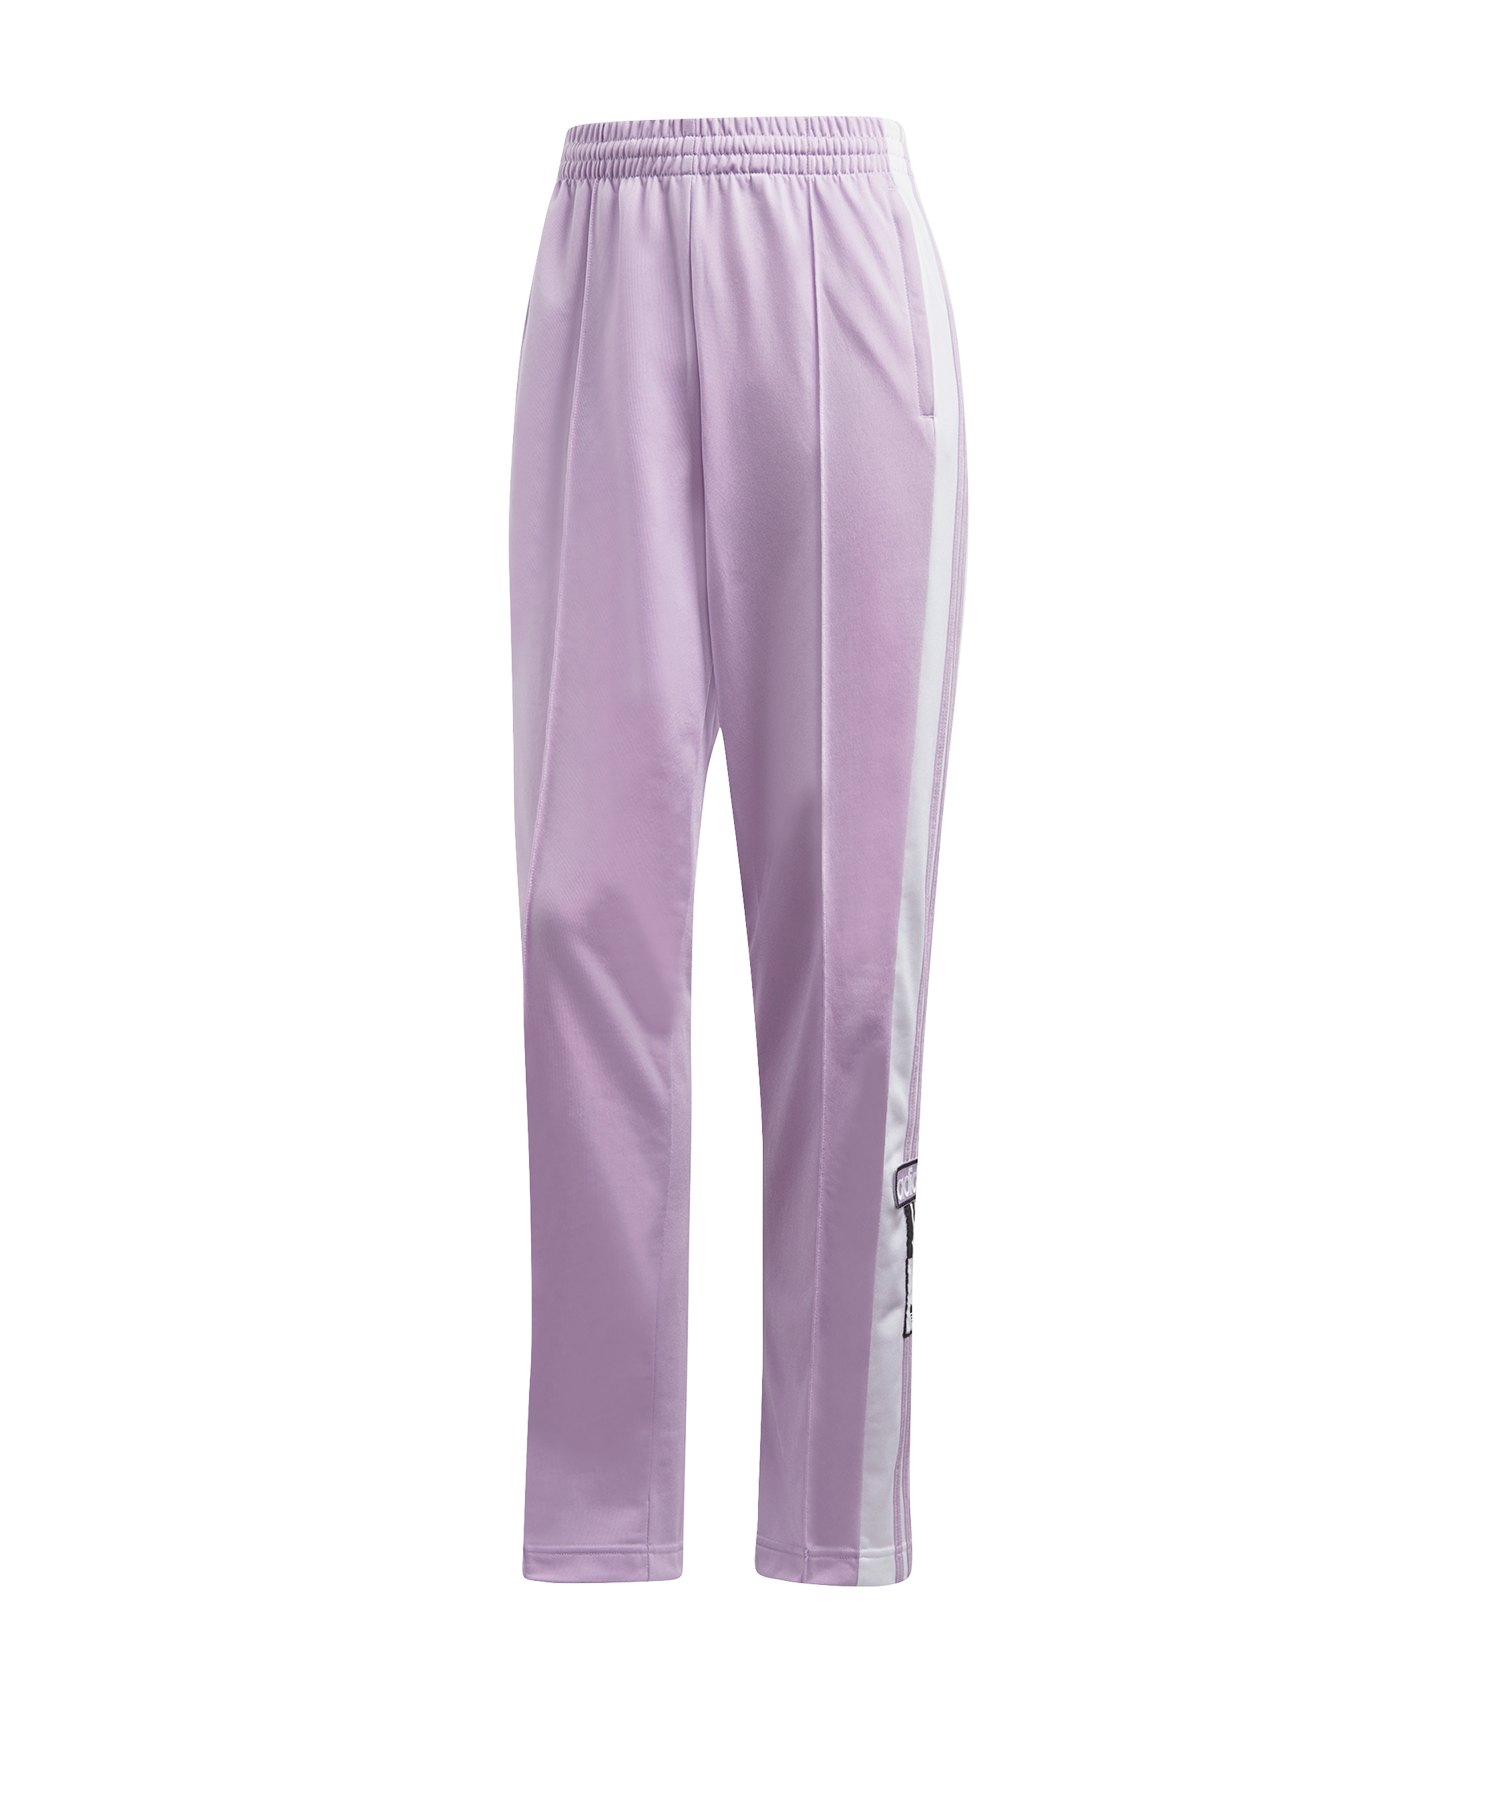 adidas Originals adibreak Track Pant Damen Lila